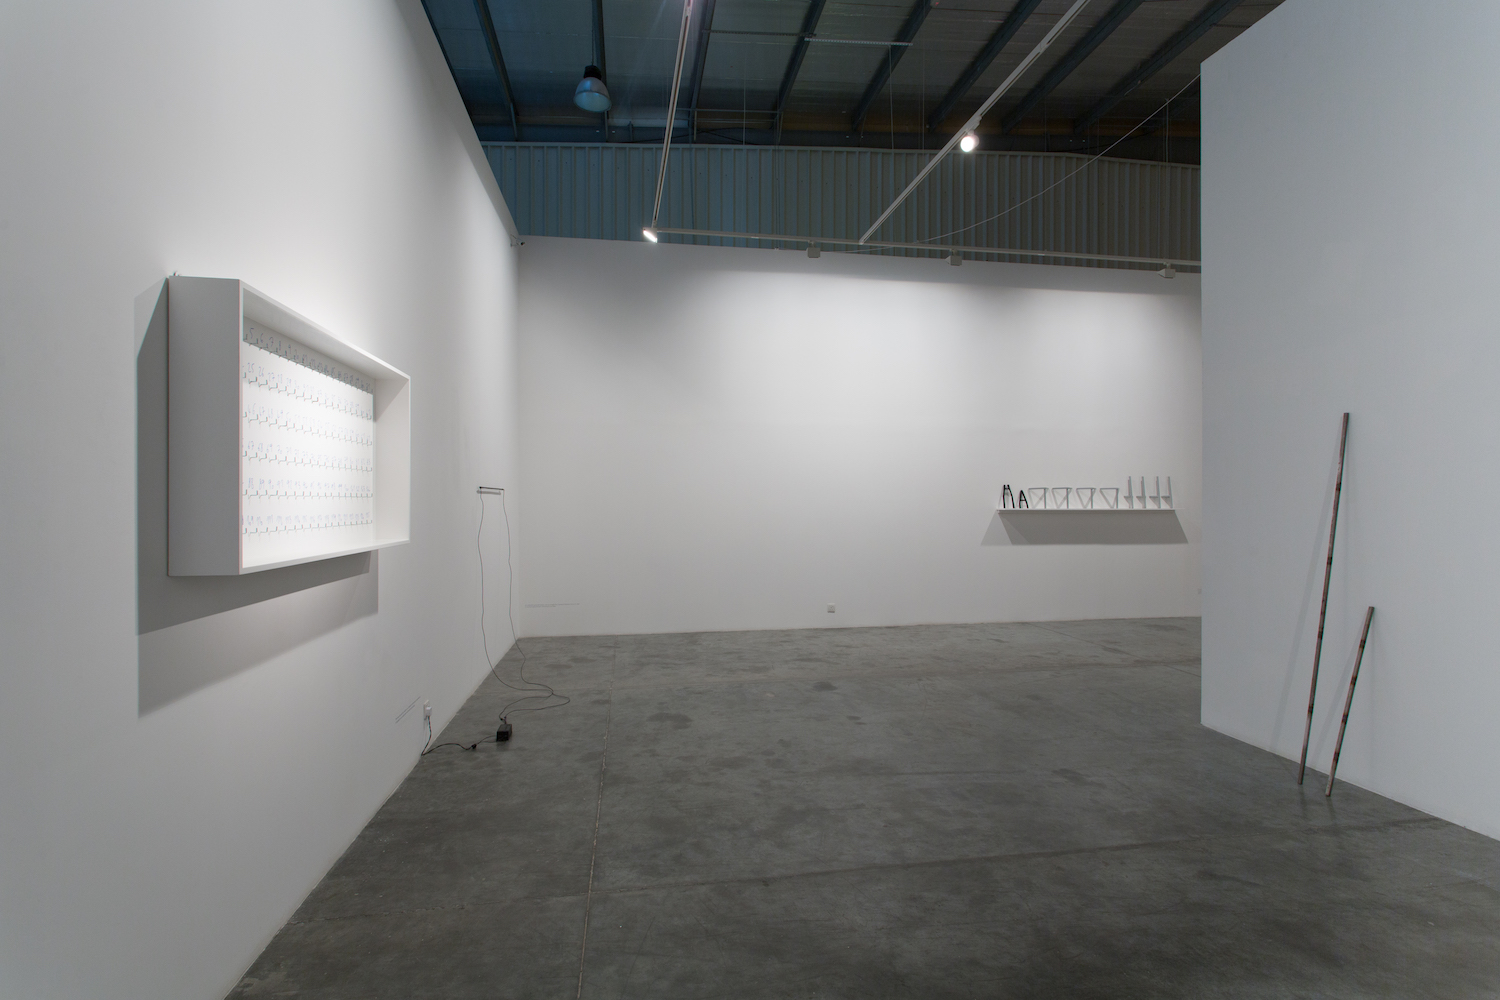 Installation view / Intangible experiences, arrangements, and manoeuvres